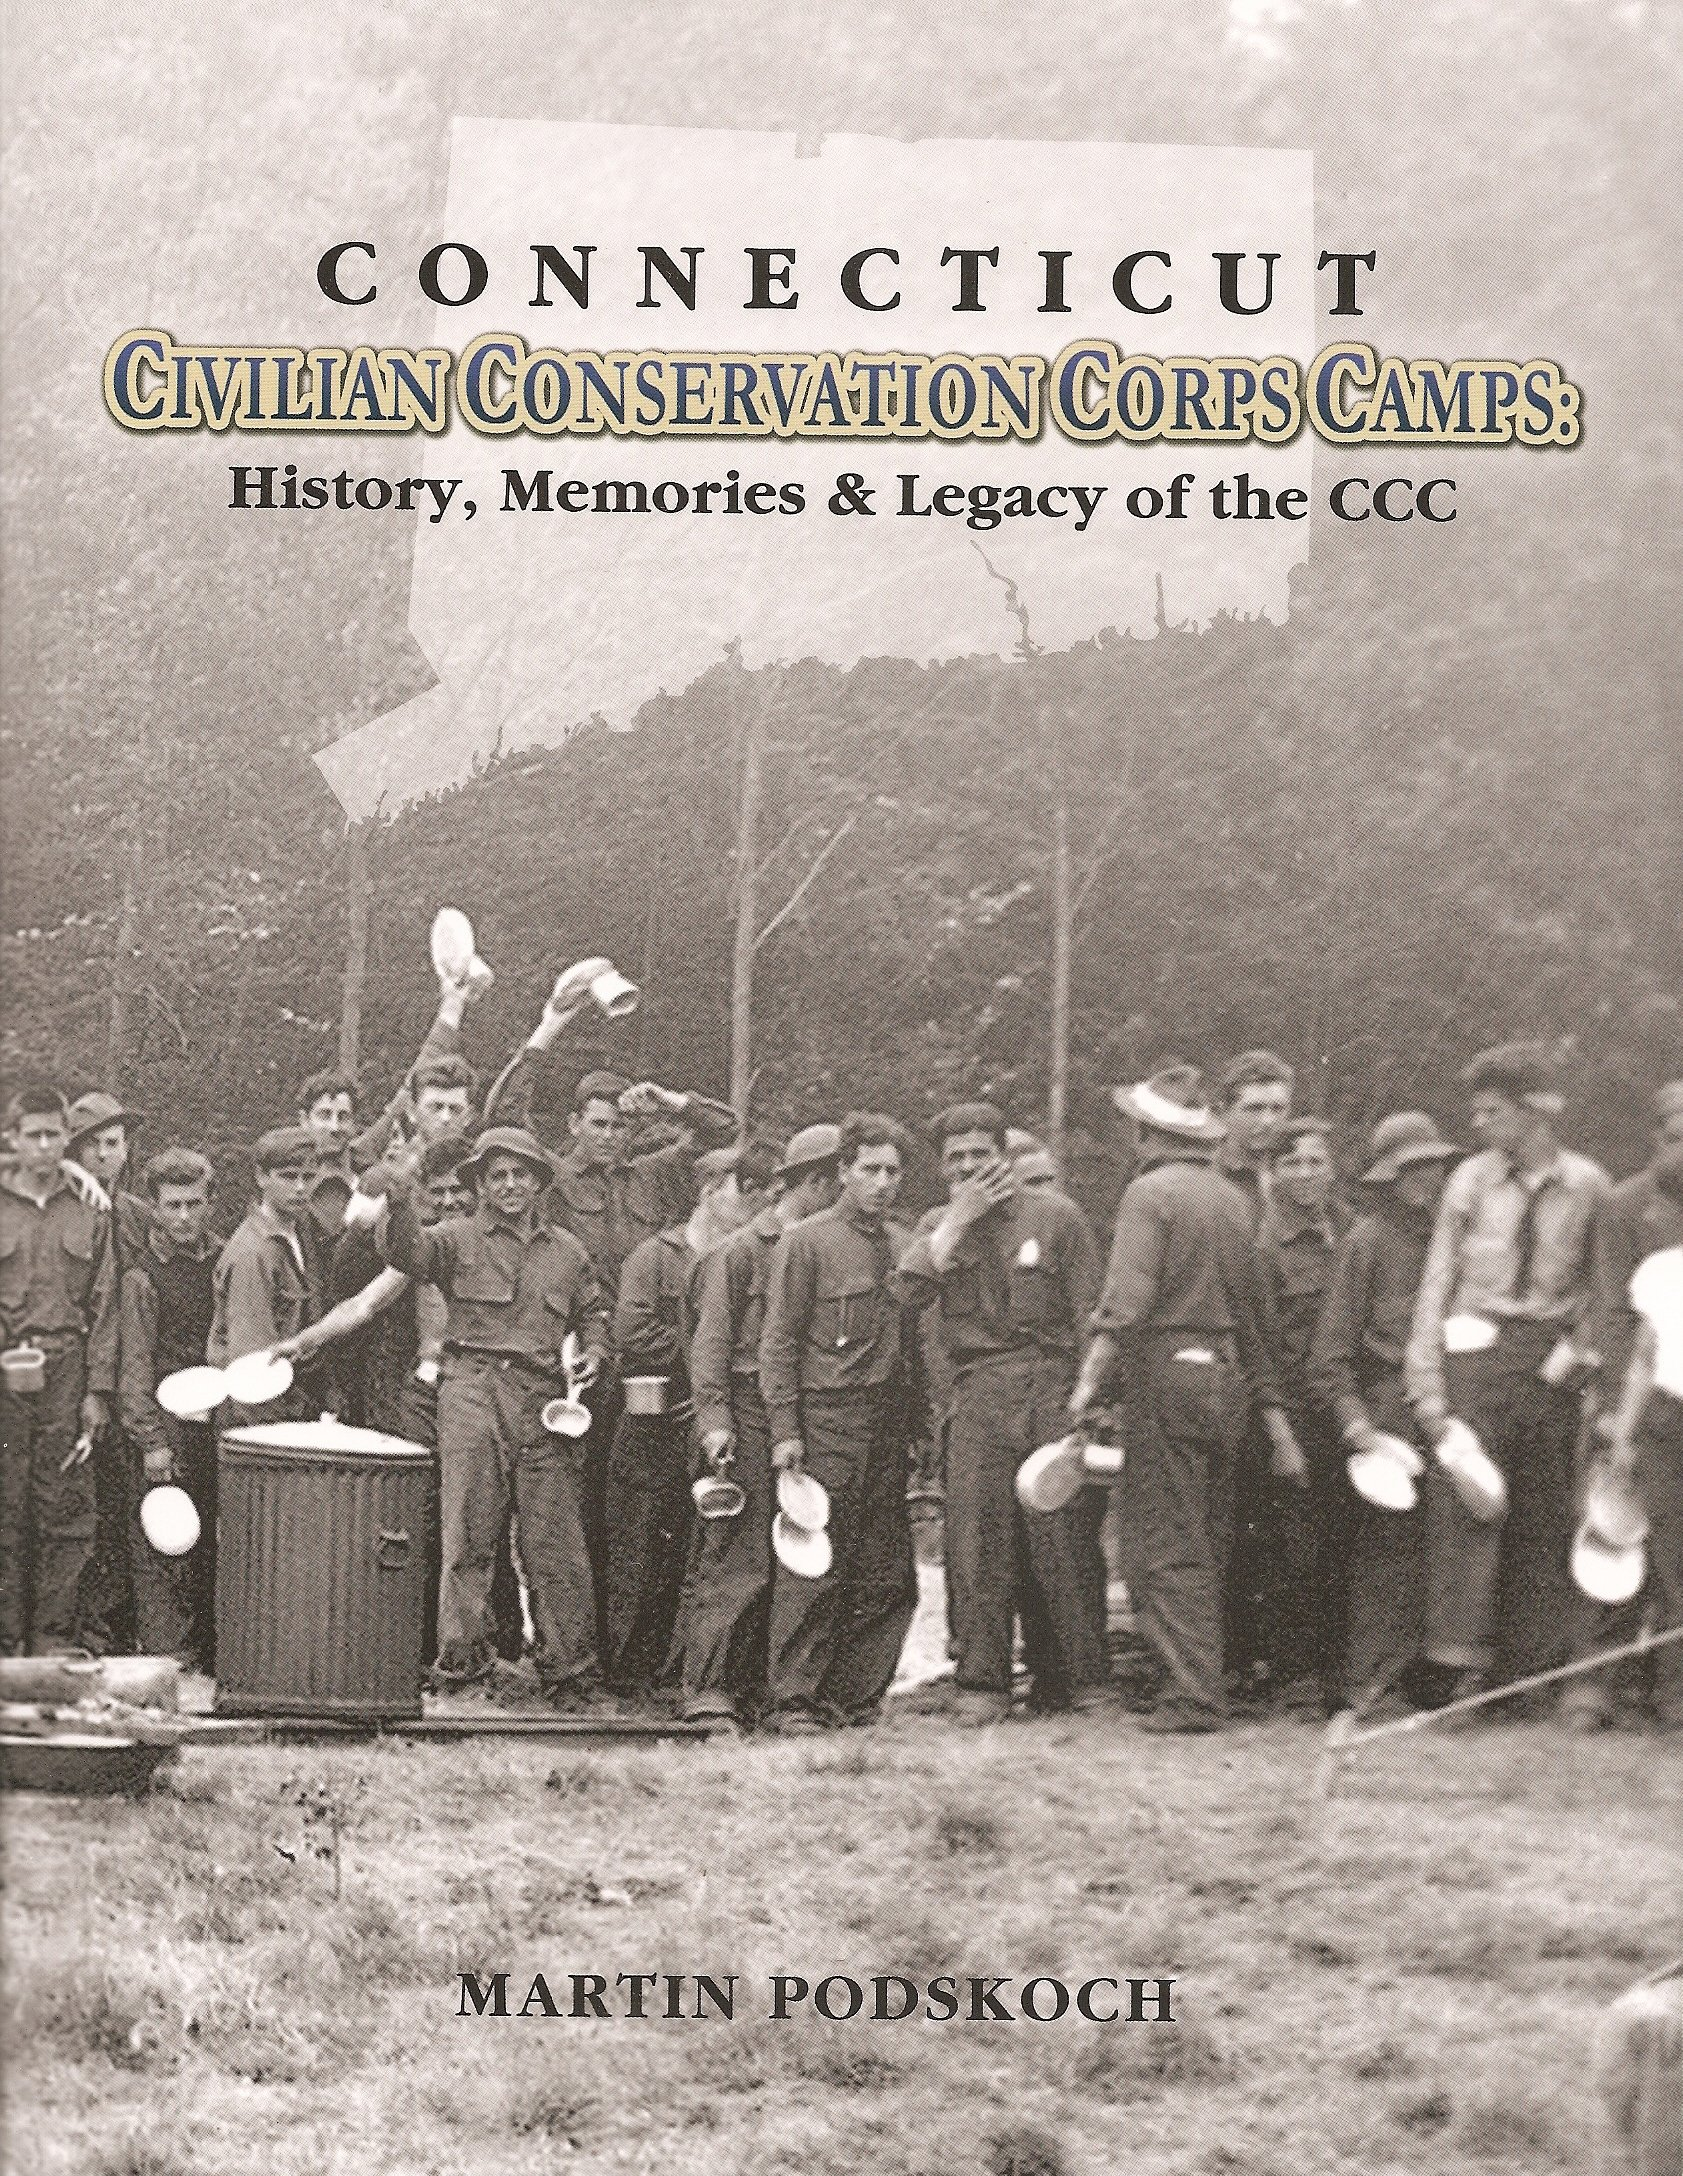 Download Connecticut Civilian Conservation Corps Camps: History, Memories & Legacy of the CCC pdf epub